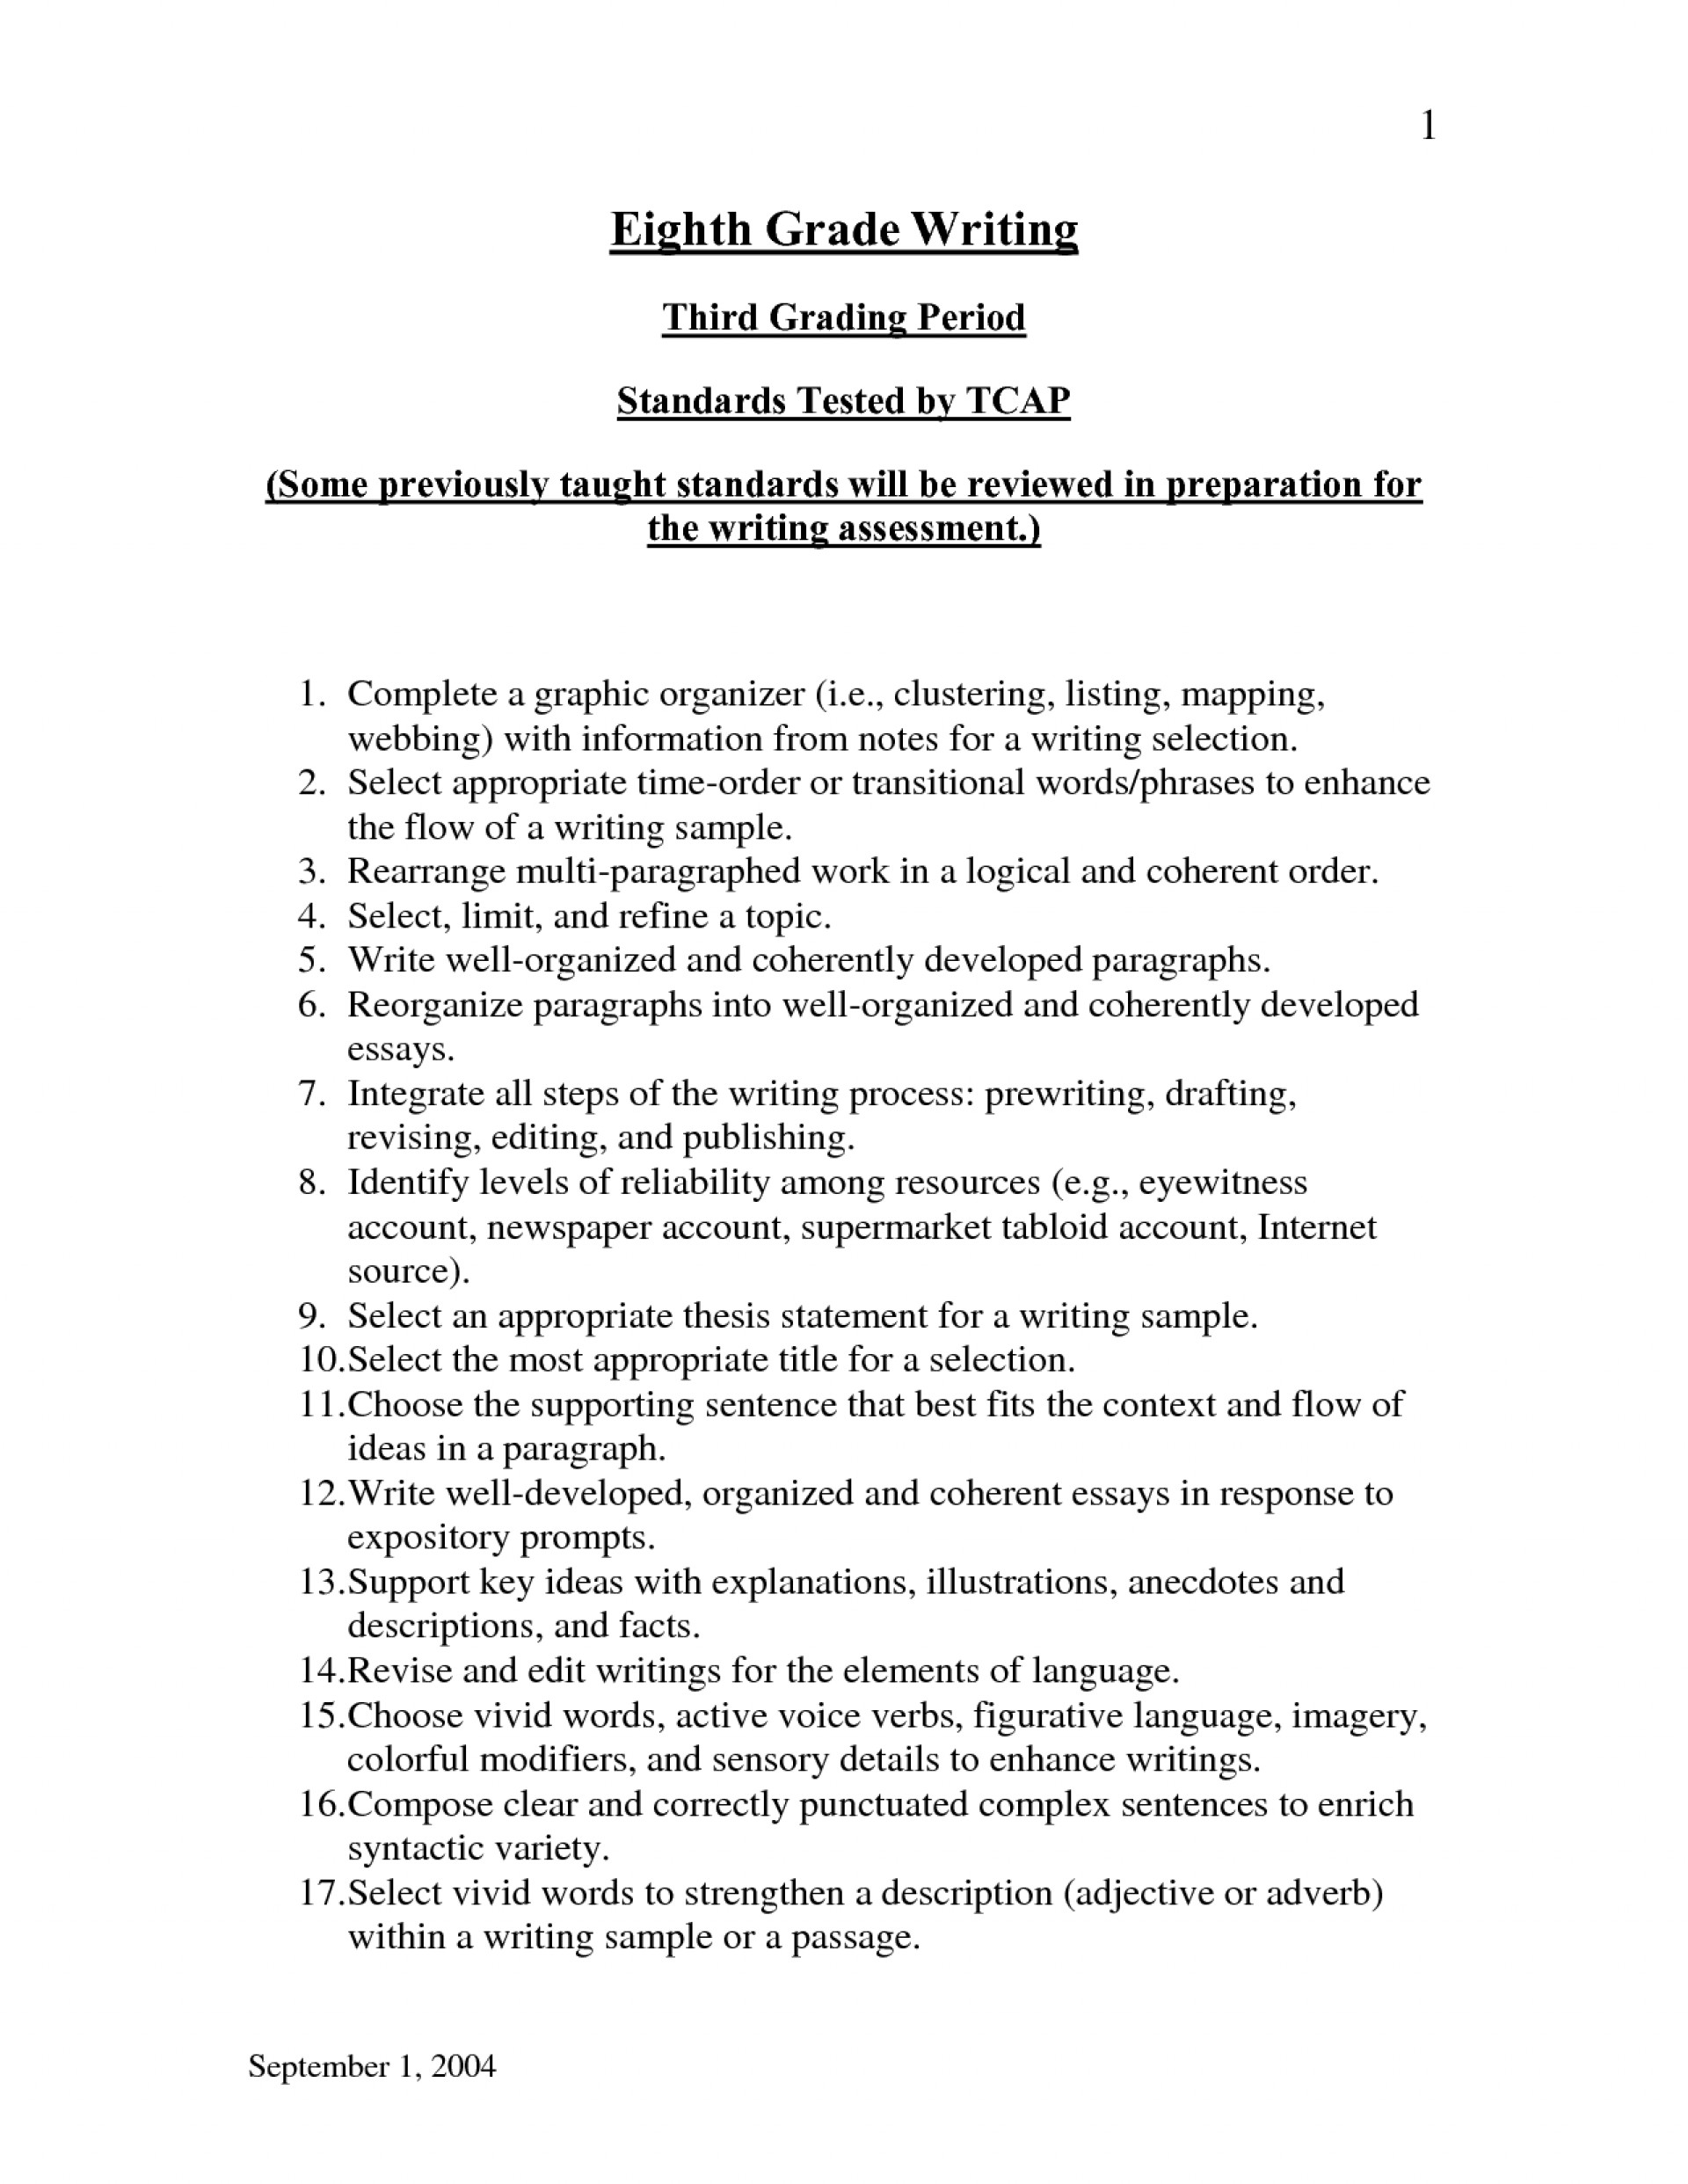 012 Essay Example What Is An Expository Writing Prompts For High School 1088622 Magnificent Gcu Examples 4th Grade 1920